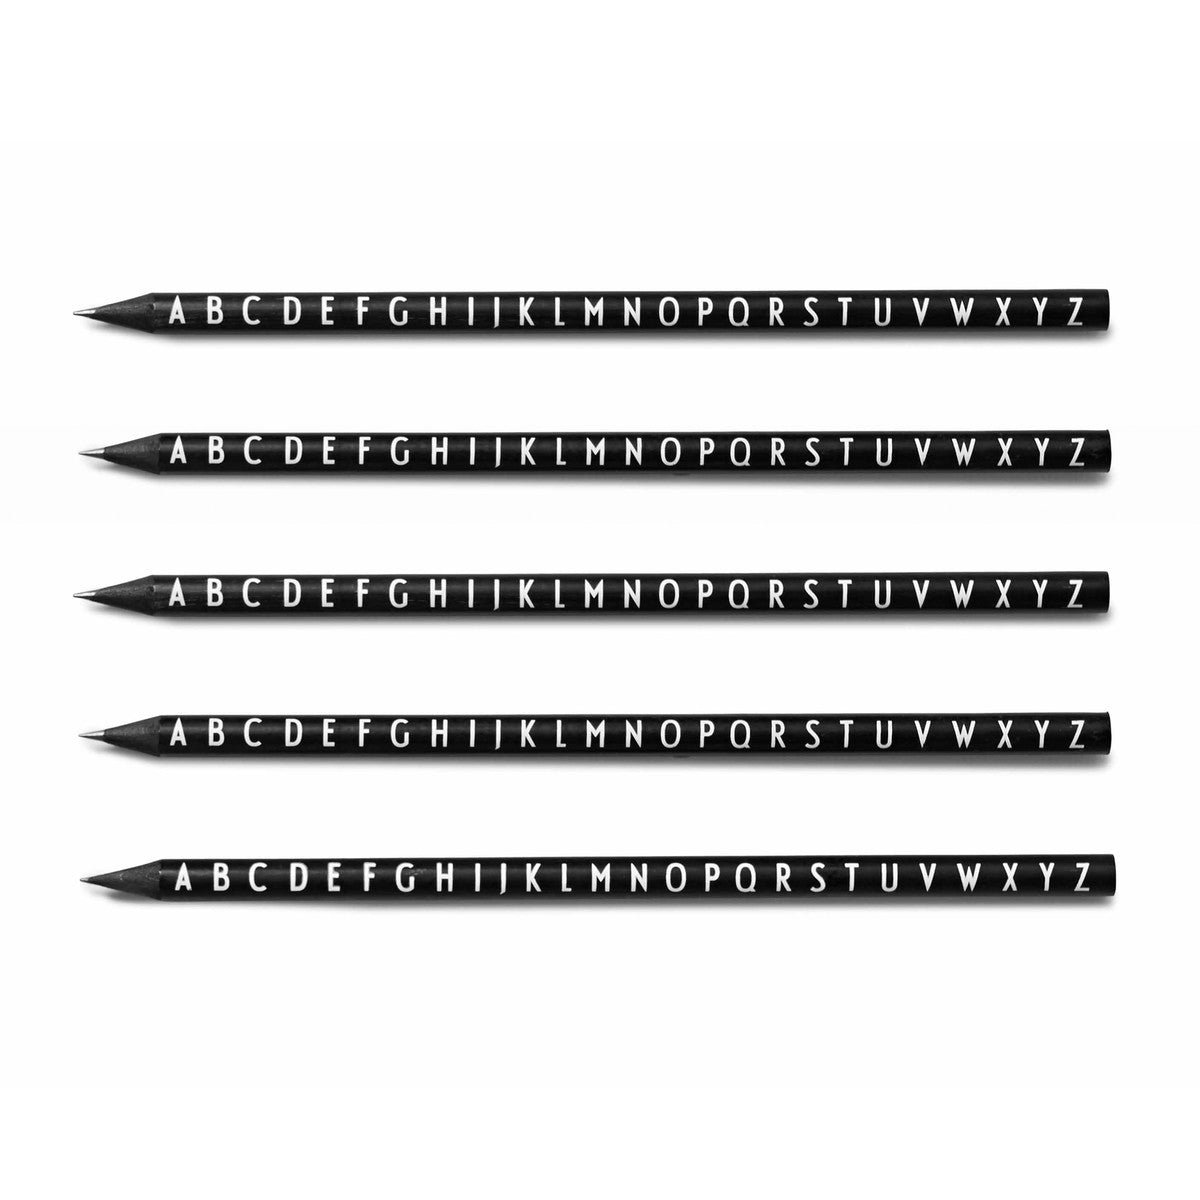 Arne Jacobsen ABC Design pencils